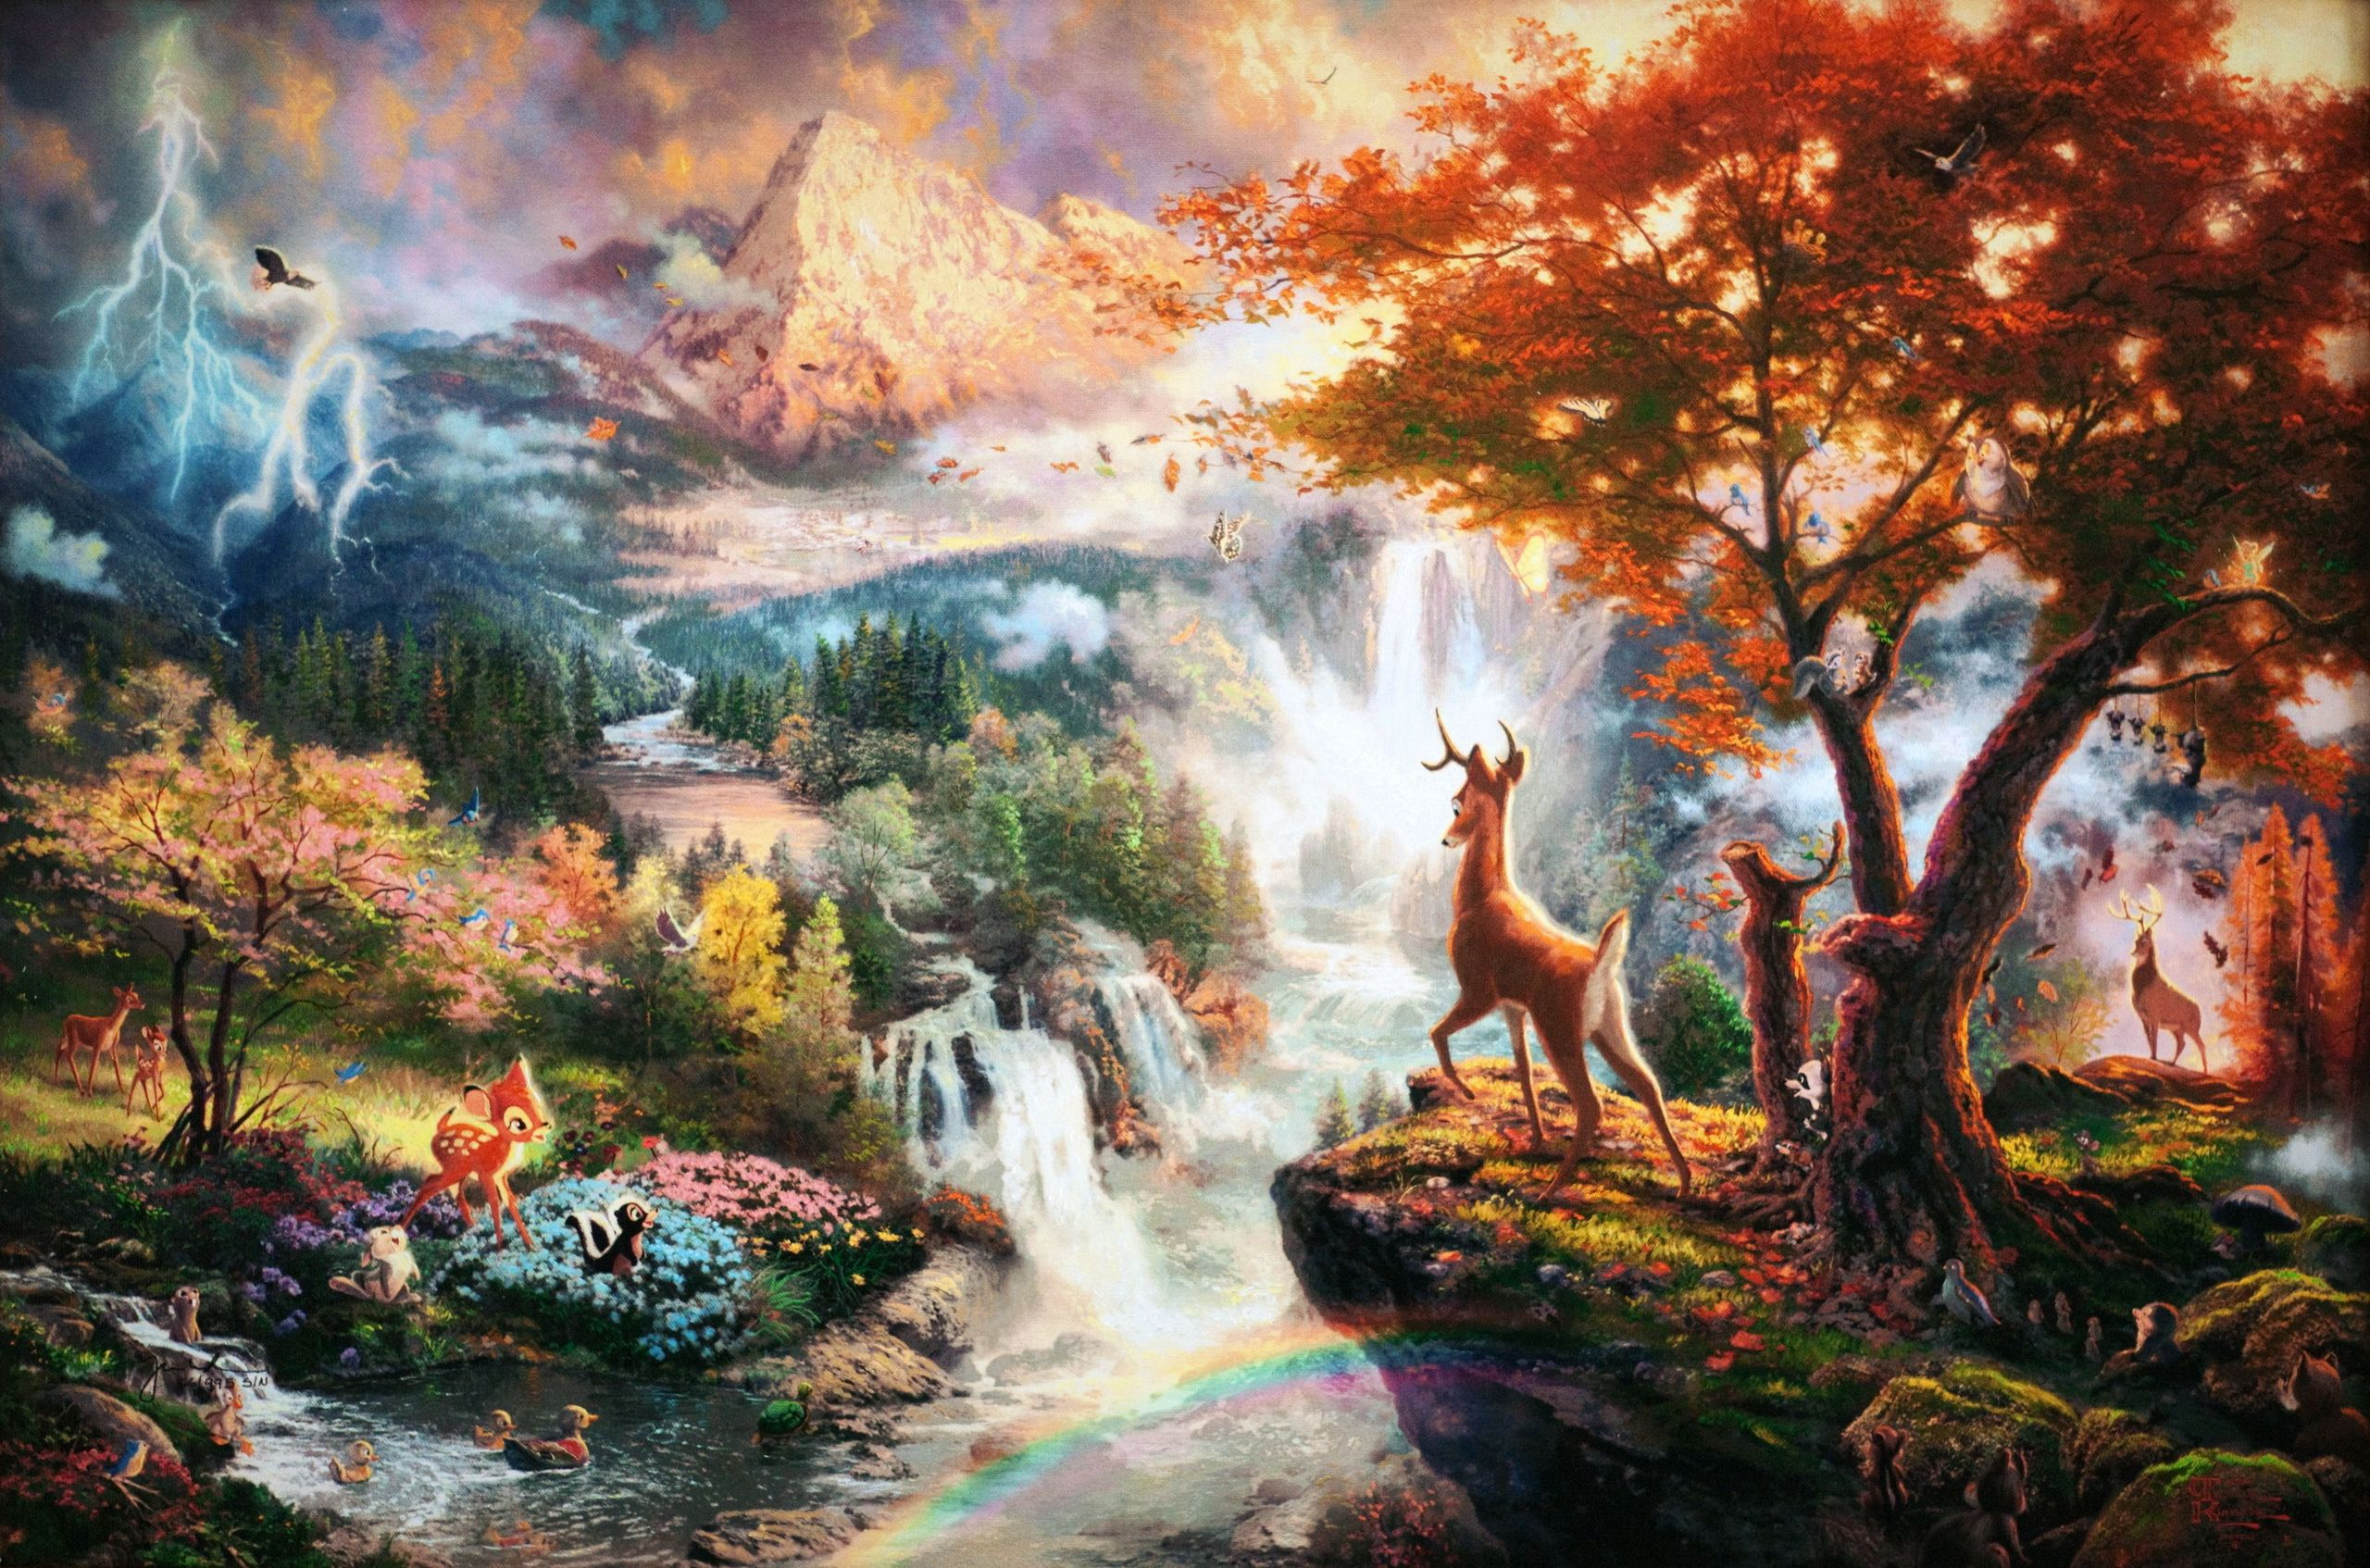 Thomas Kinkades Disney Paintings   Bambi wallpaper photos 28821938 2560x1694